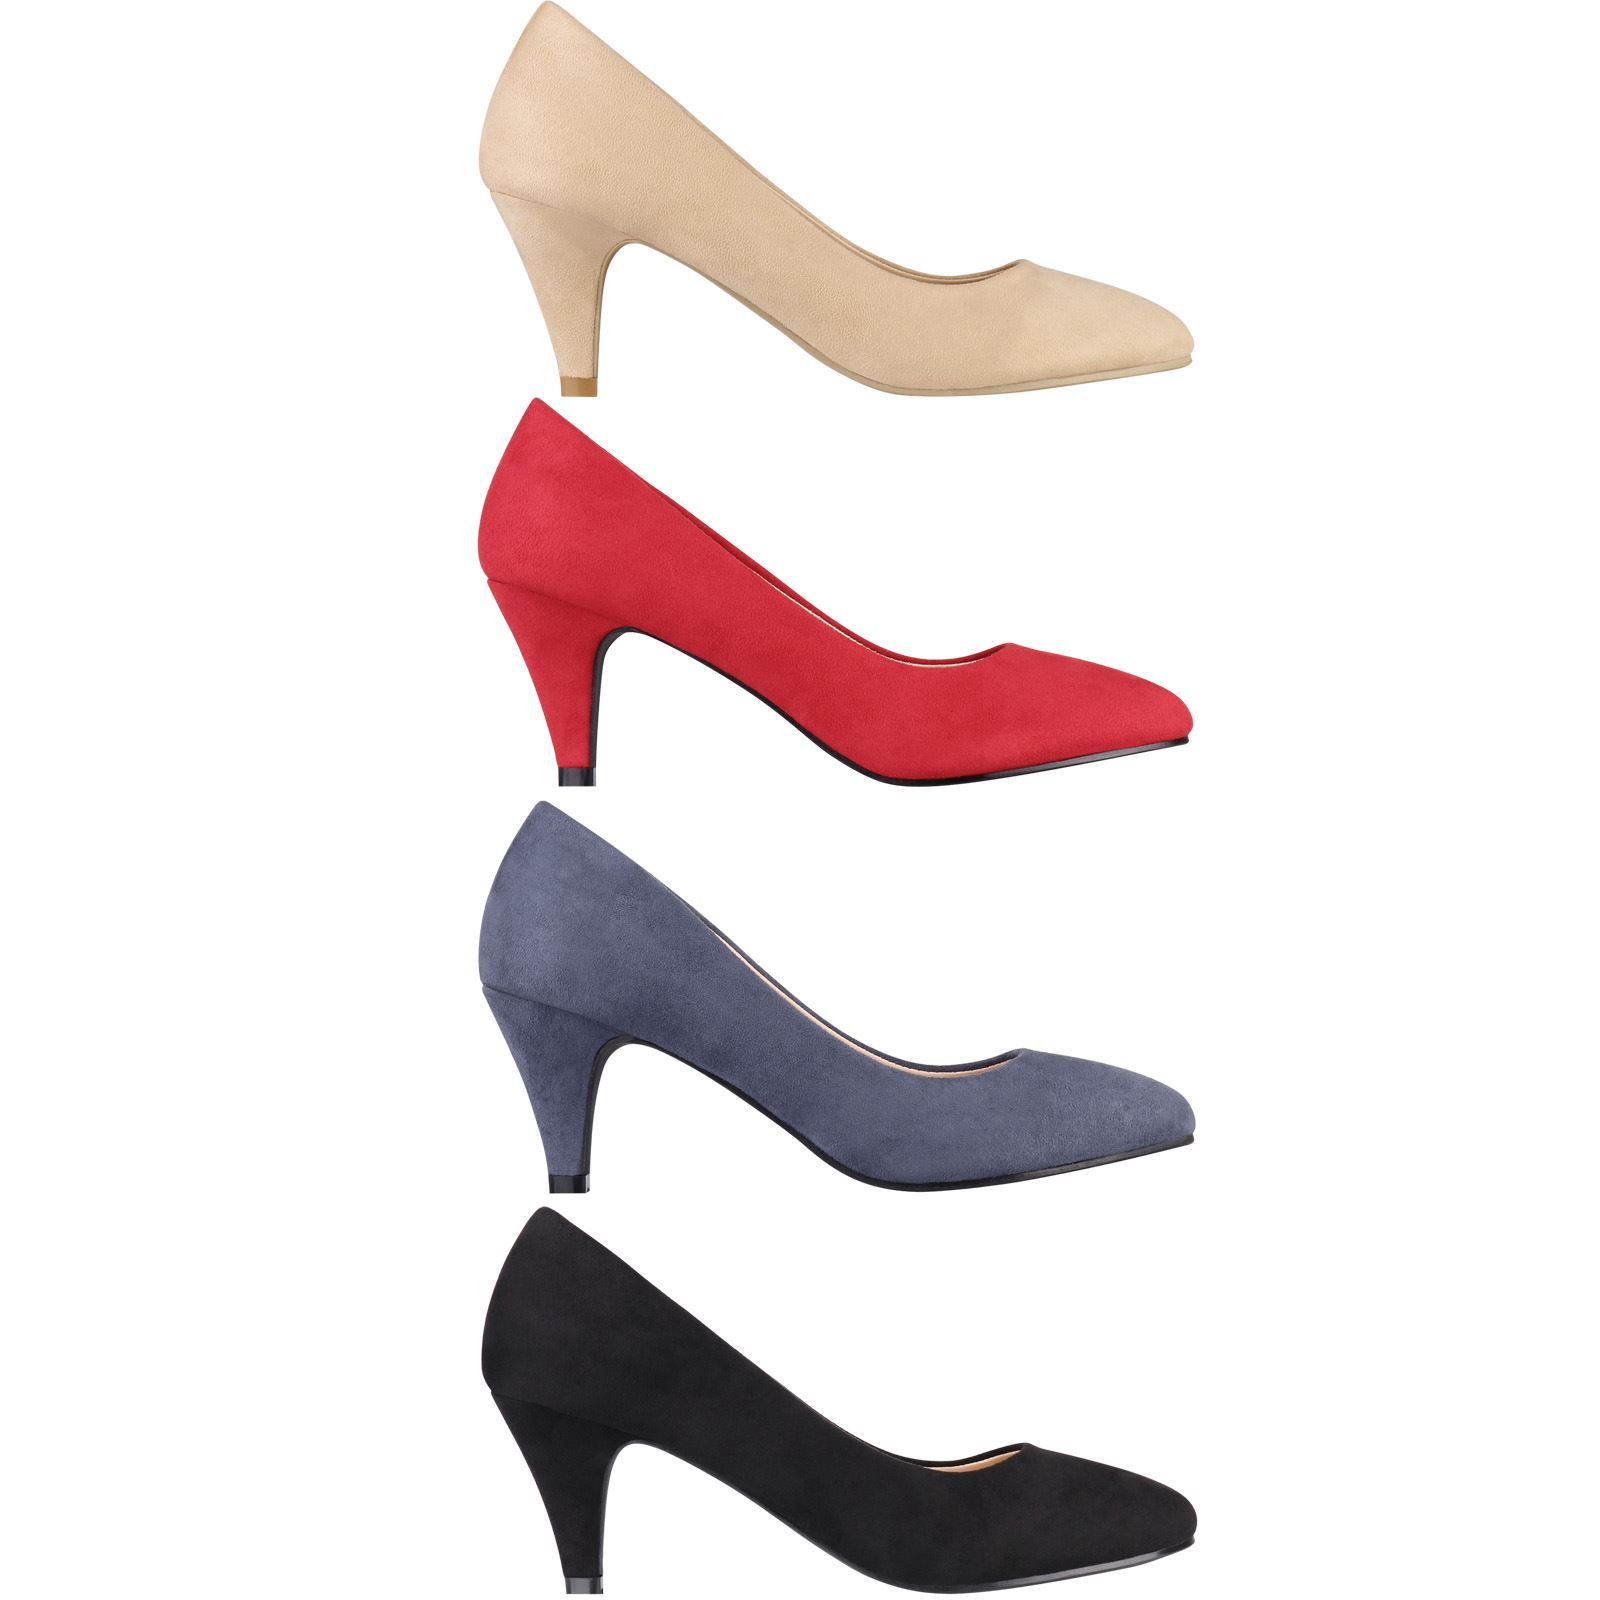 New Fashion Ladies Kitten Heels Court Shoes Work Party Office Pumps US All Size